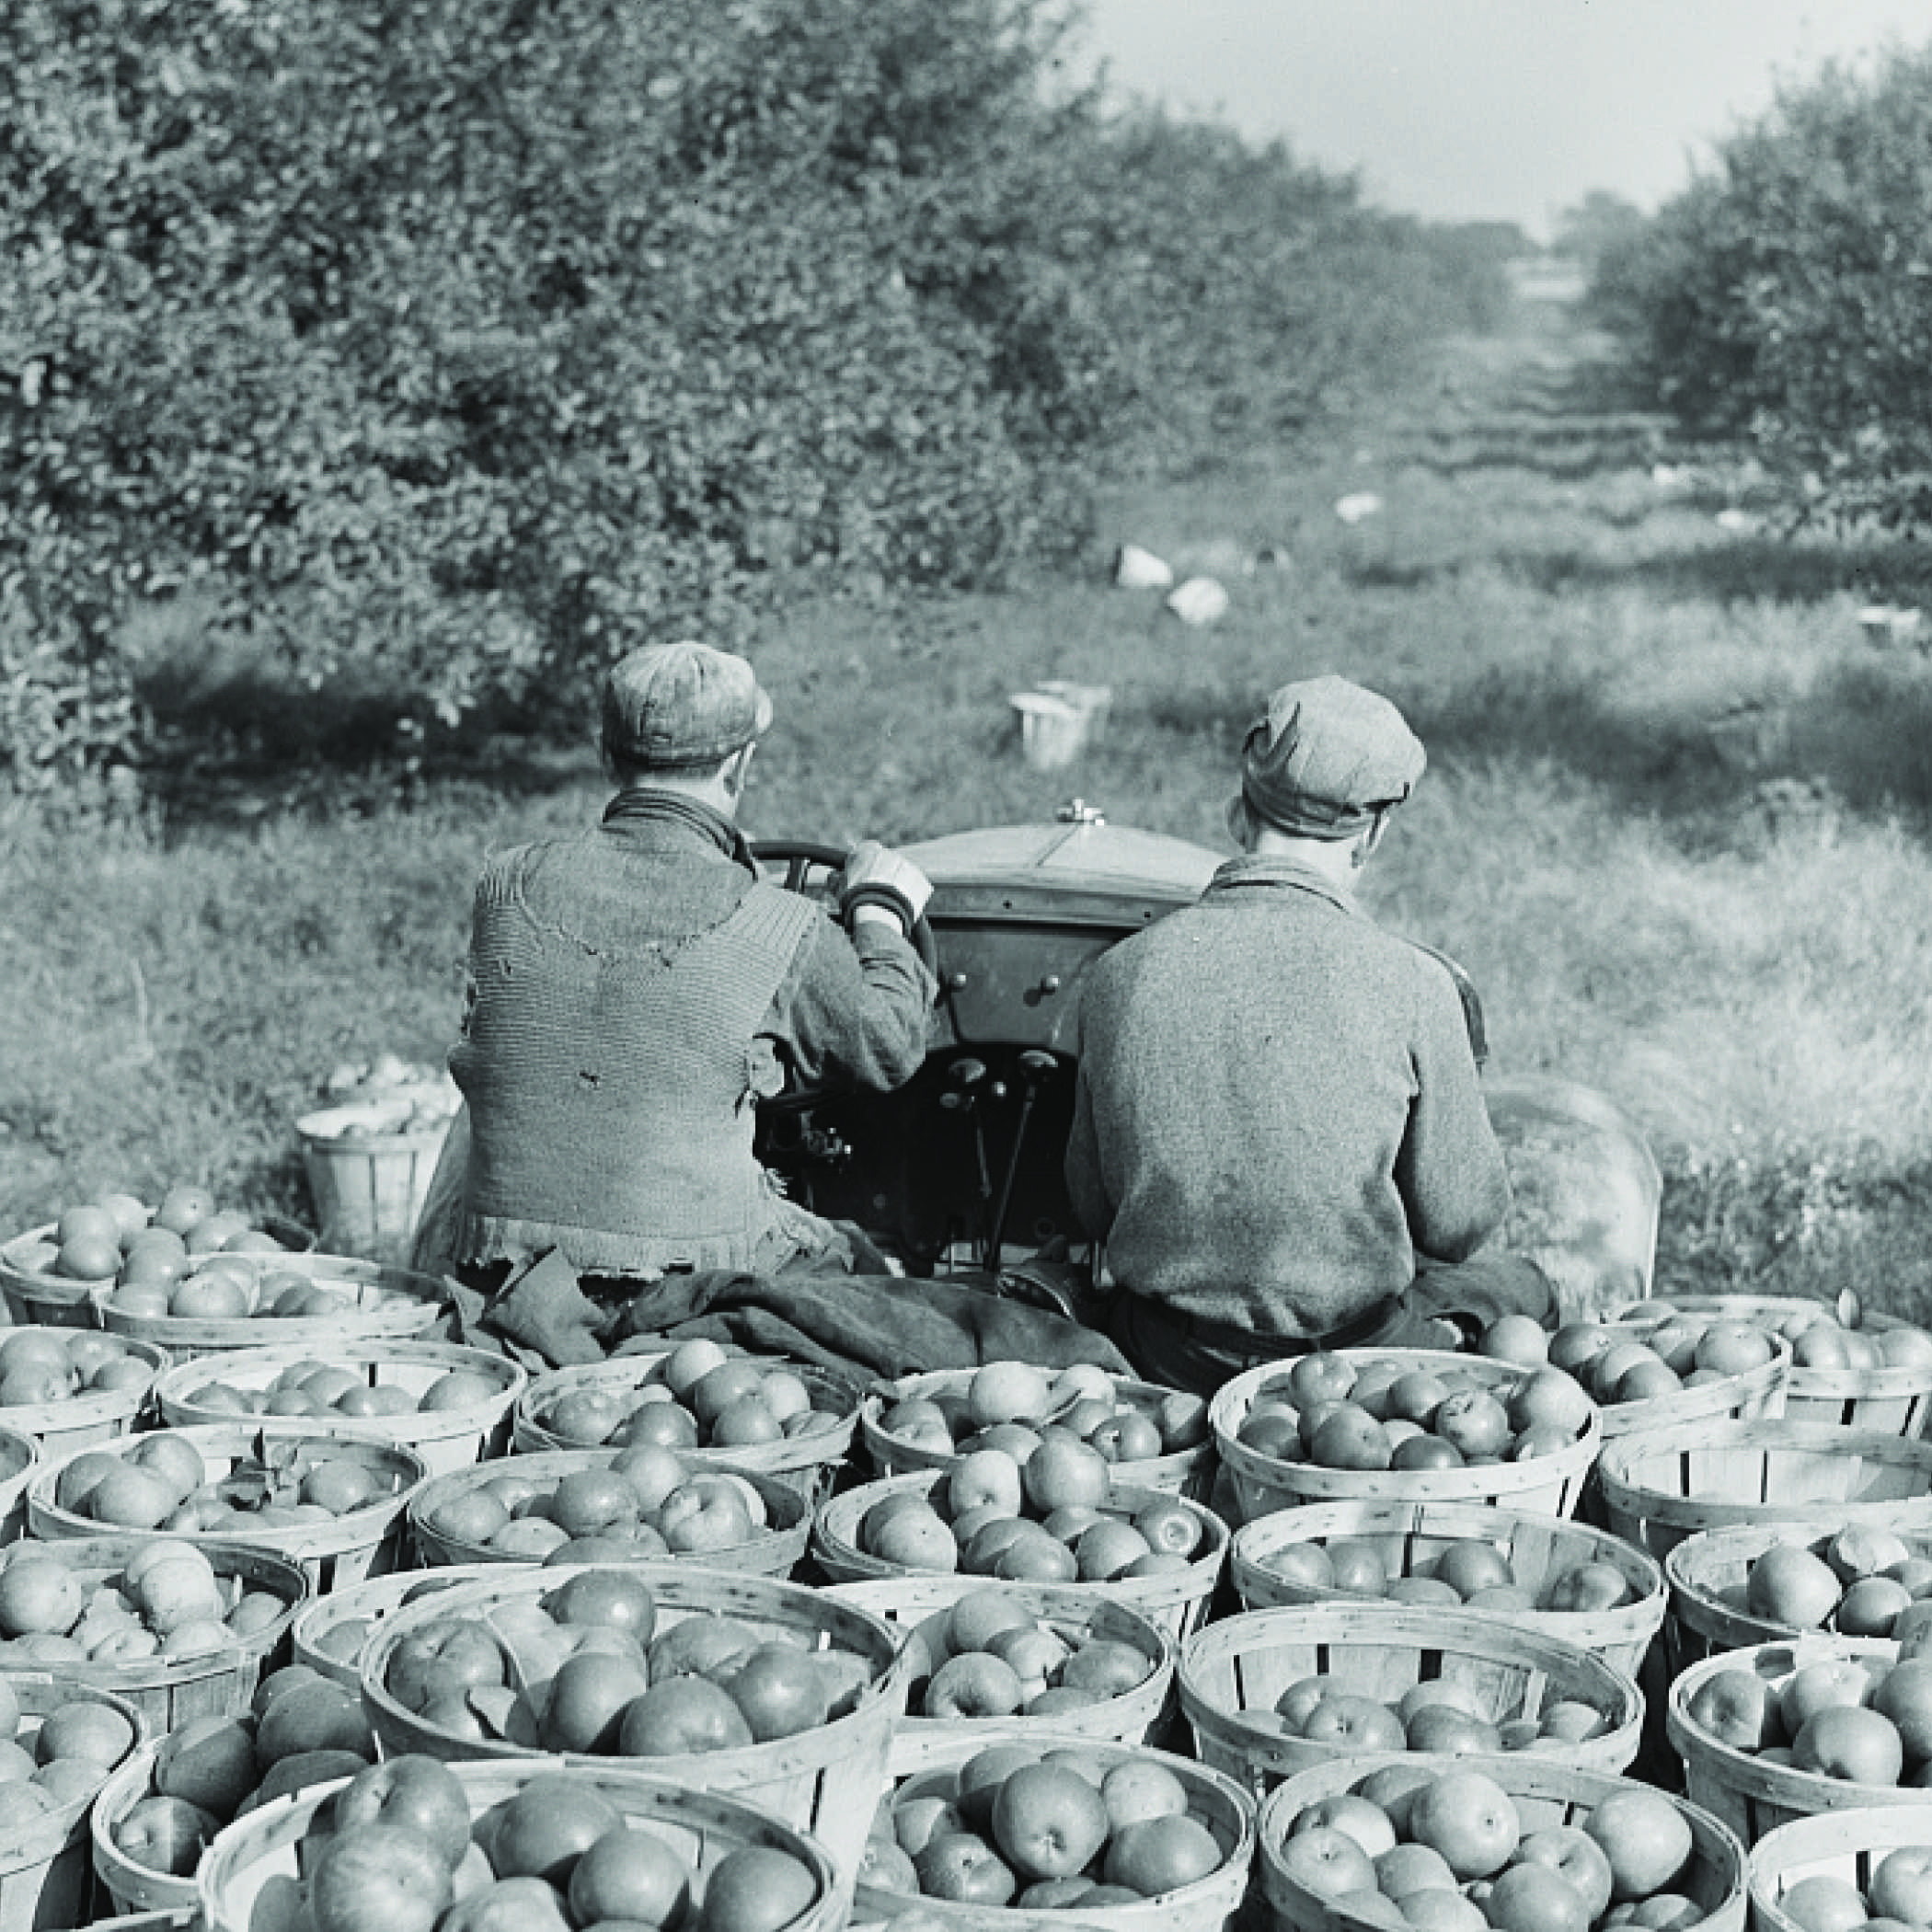 black and white photo from the 1930s of two farmers driving a tractor with a trailer loaded with bushel baskets of apples down a row in an apple orchard